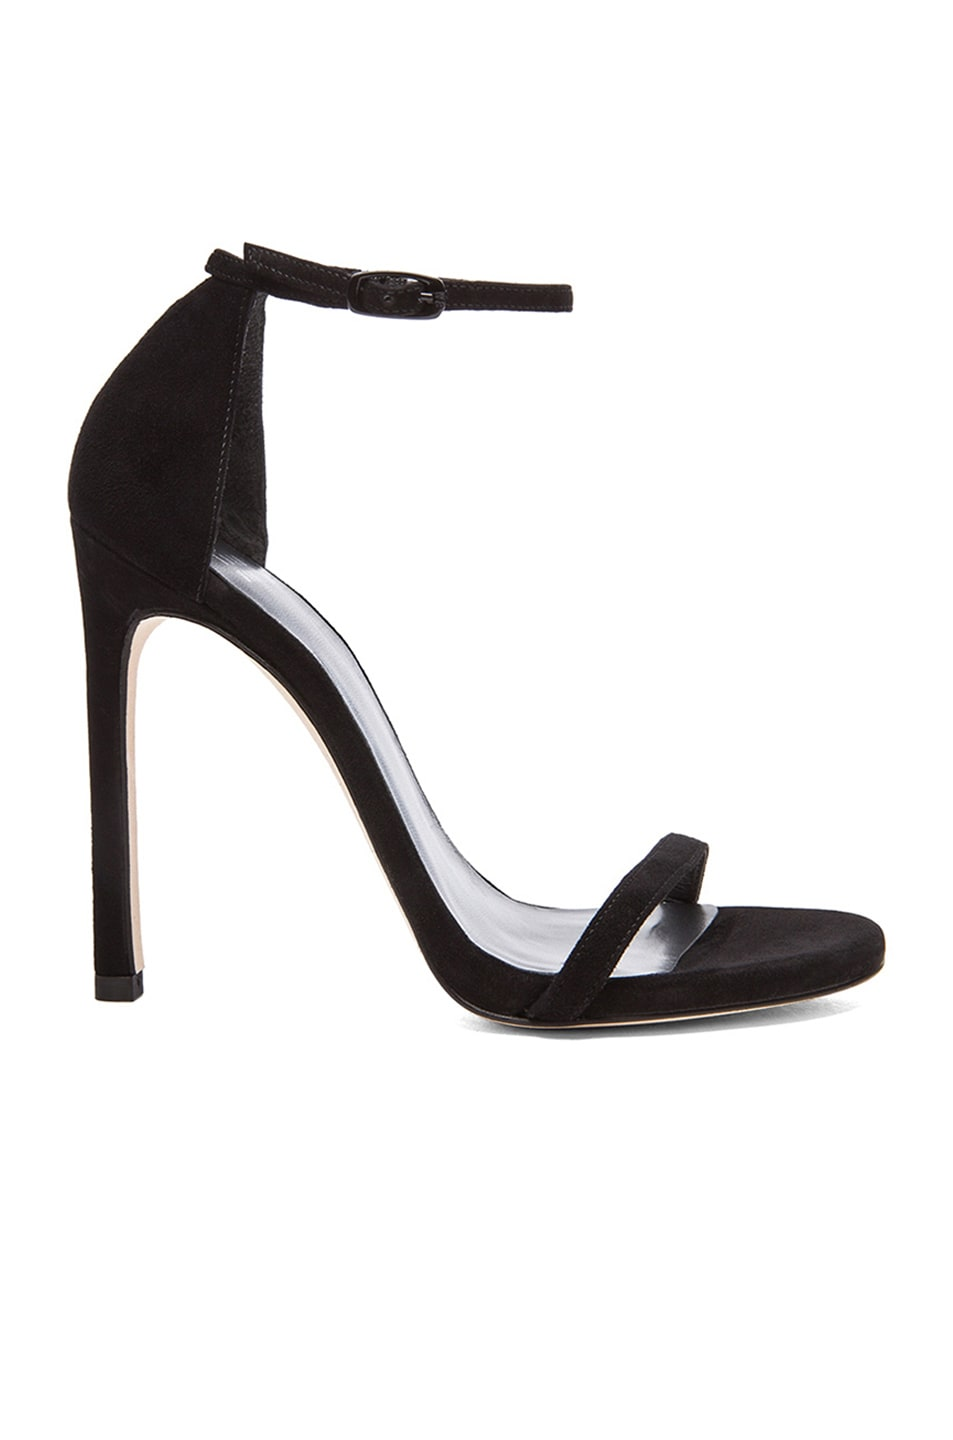 Image 1 of Stuart Weitzman Suede Nudist Heels in Black Suede